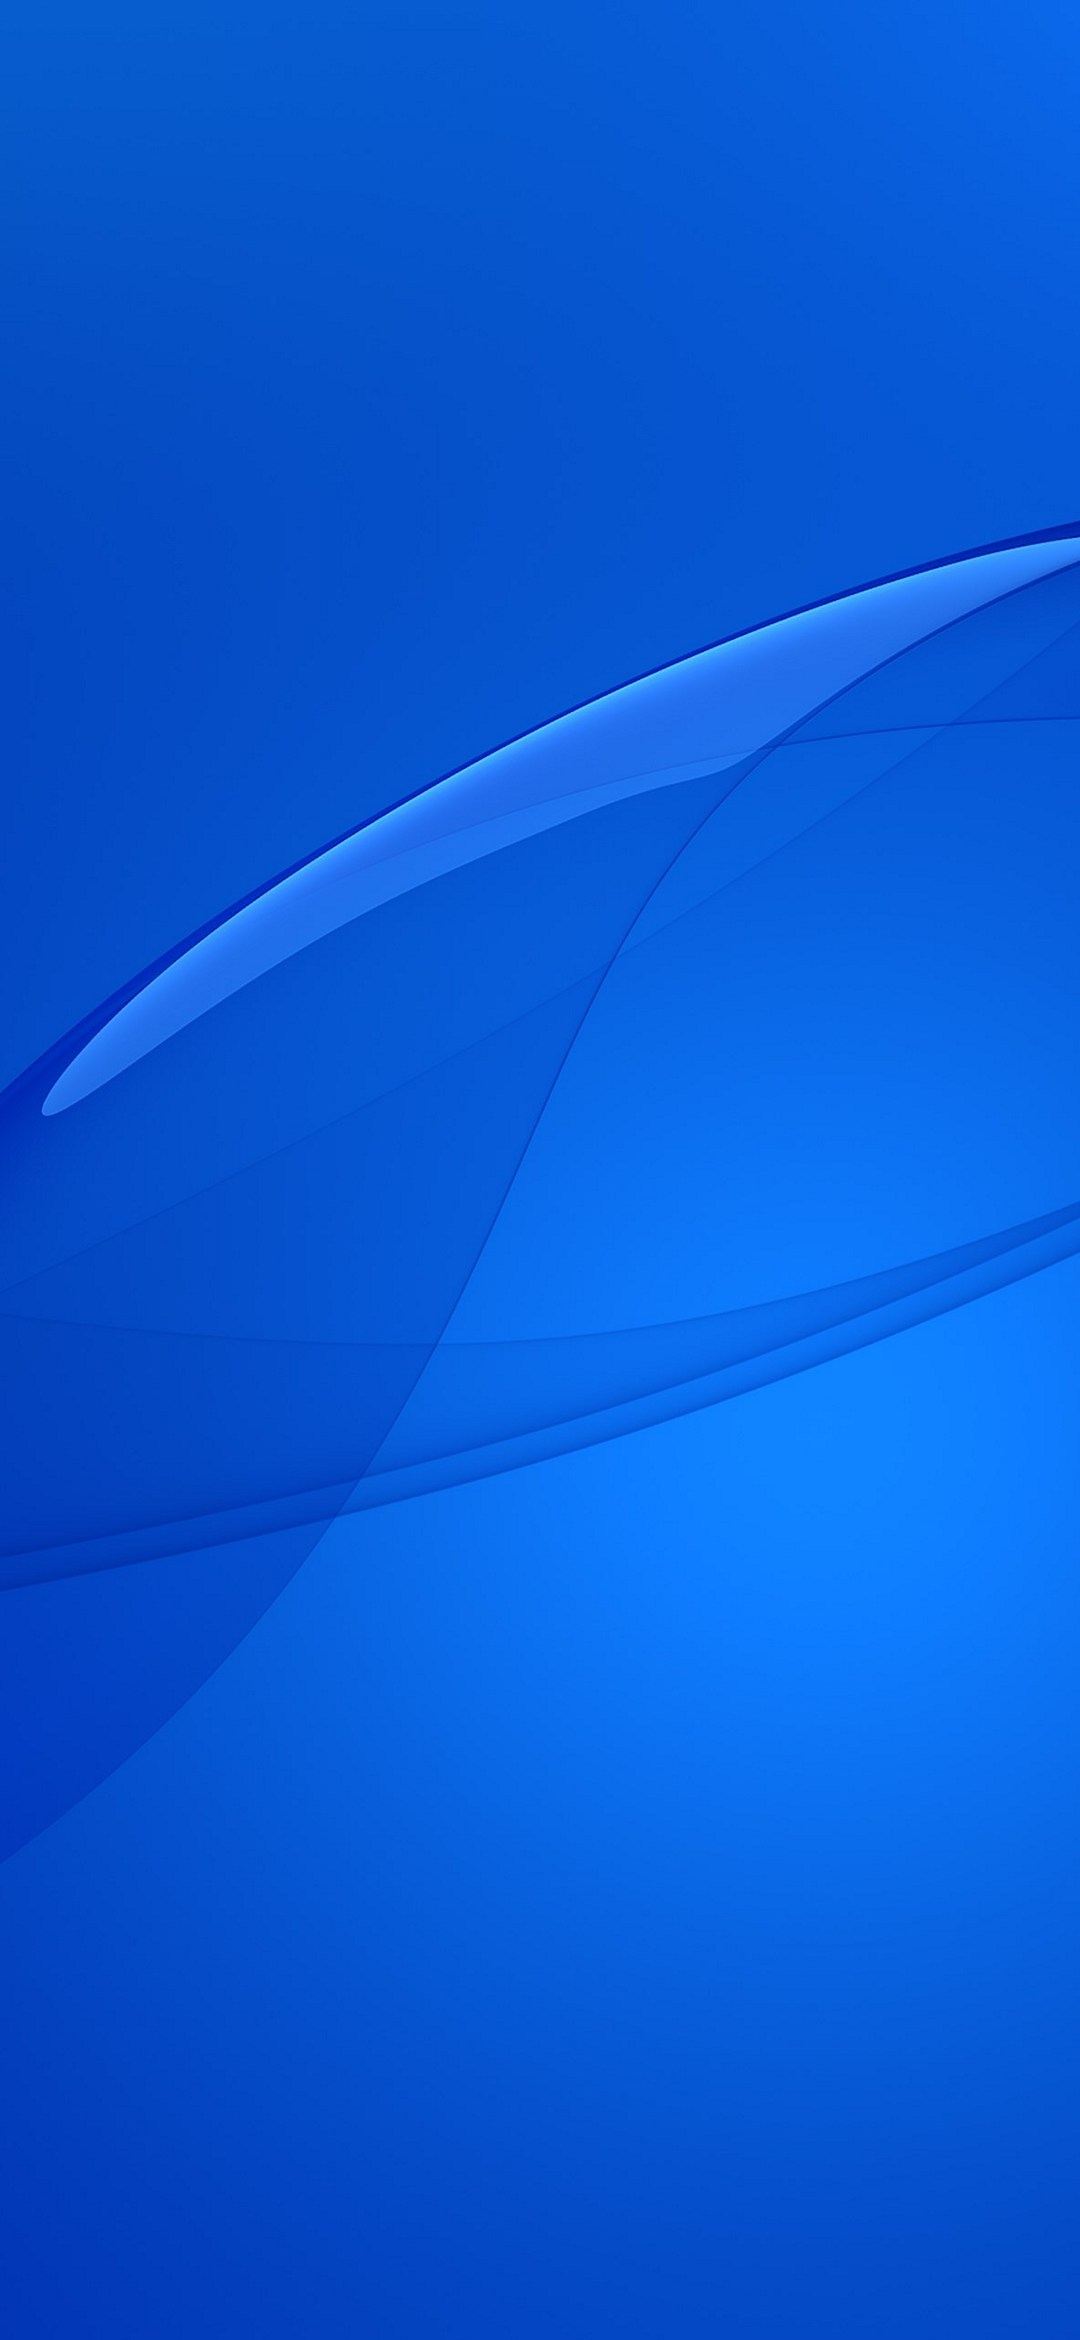 Beautiful And Simple Blue Background Redmi 9t Android スマホ壁紙 待ち受け スマラン